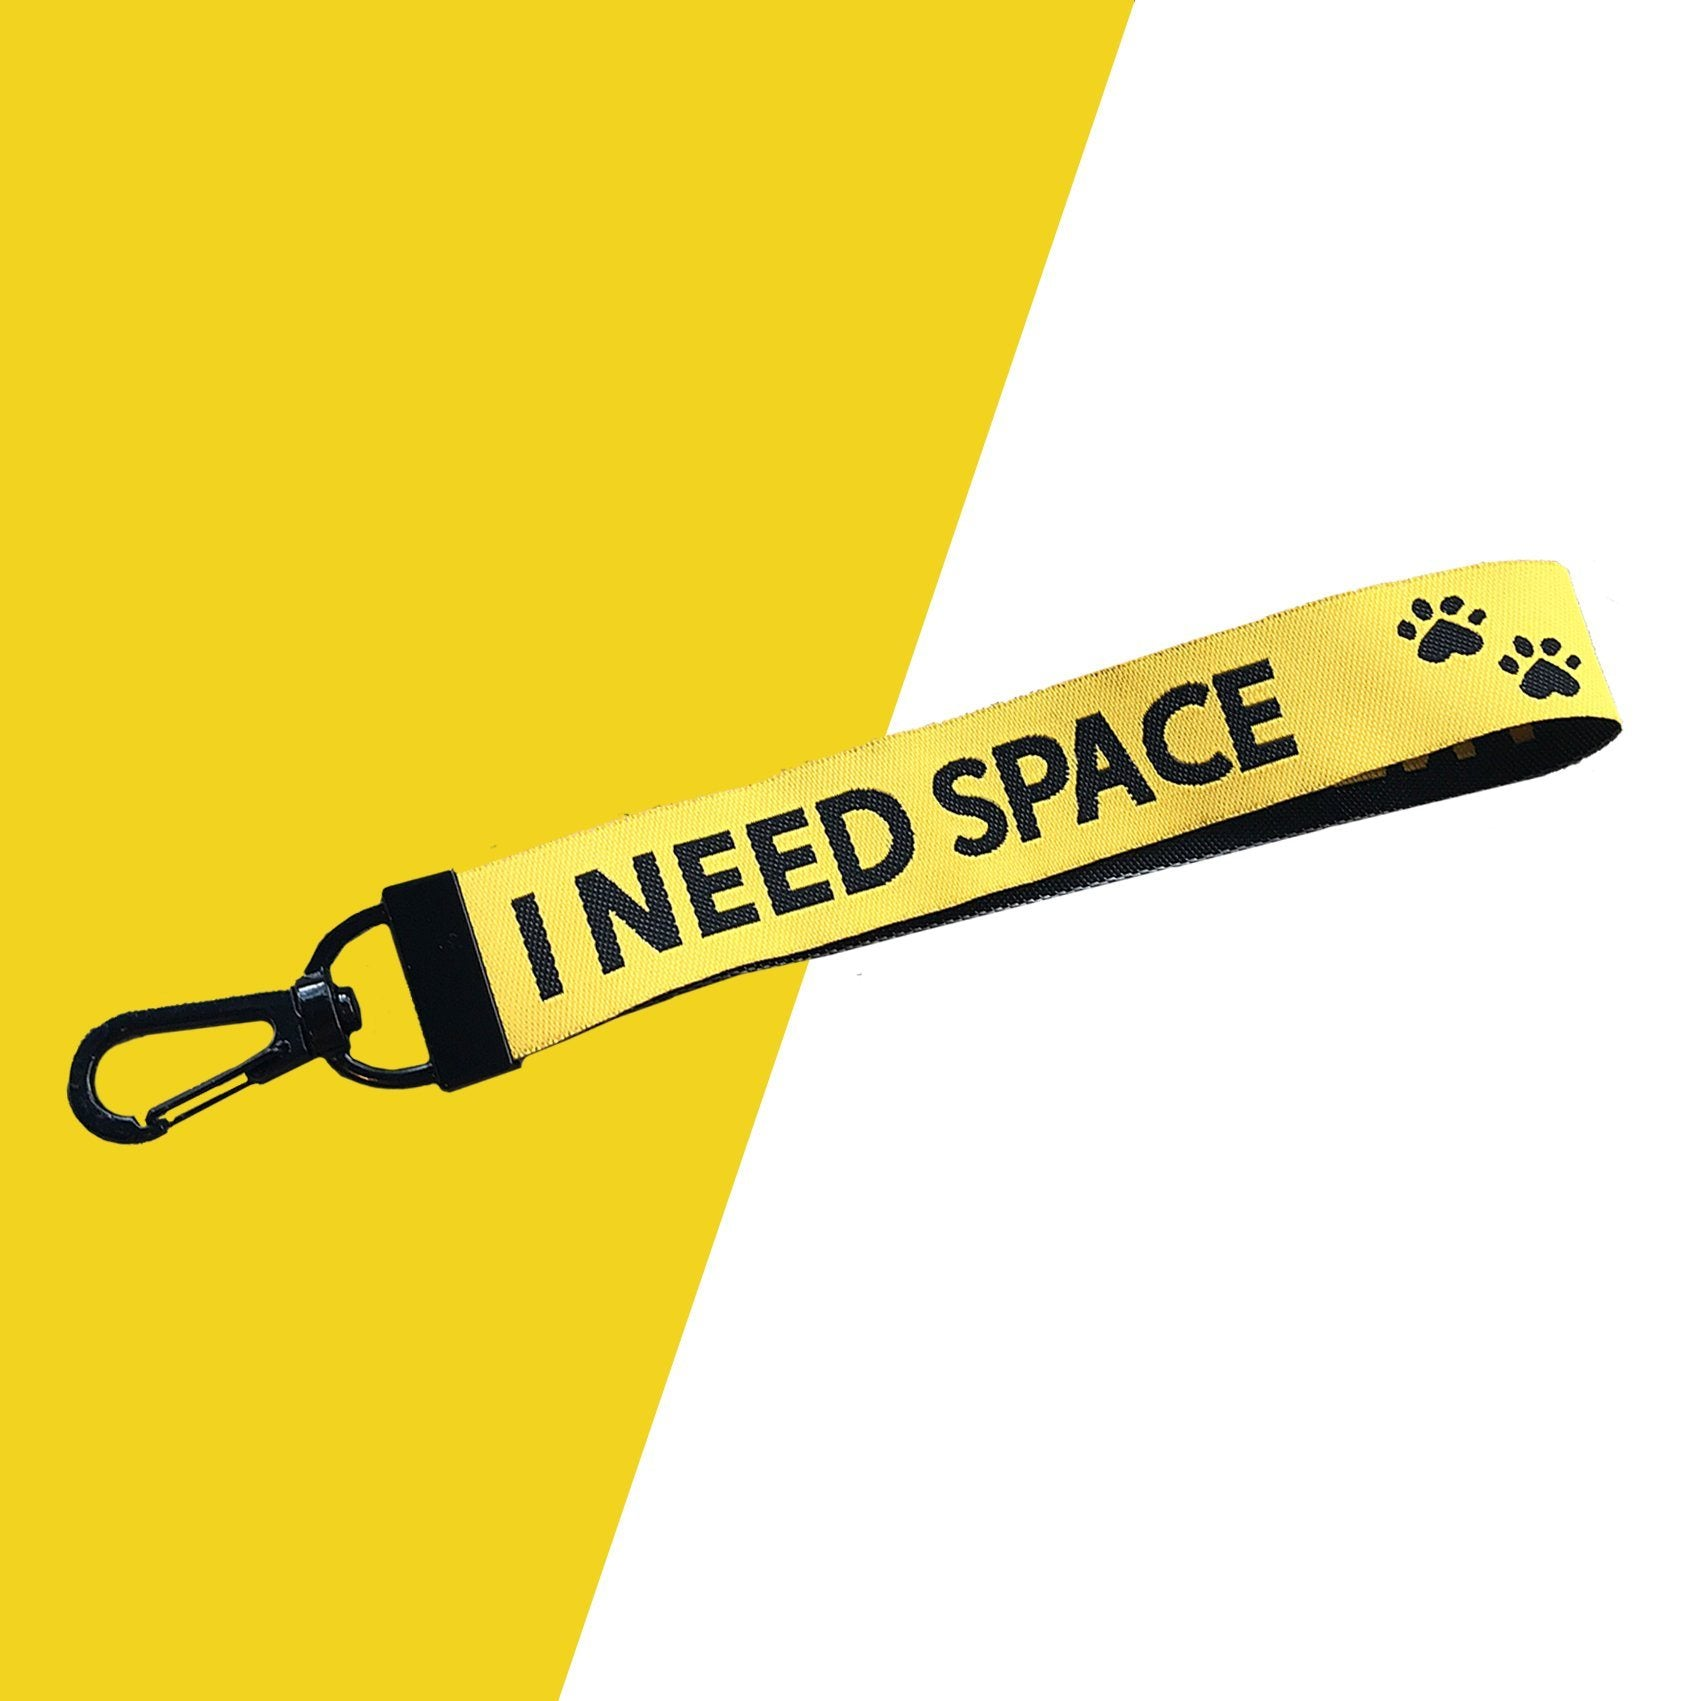 I Need Space Ribbon Key Chain a symbol on leash or collar for nervous dog walking playing toy outside stylish accessory bag backpack Lanyard New Collection Frenchic